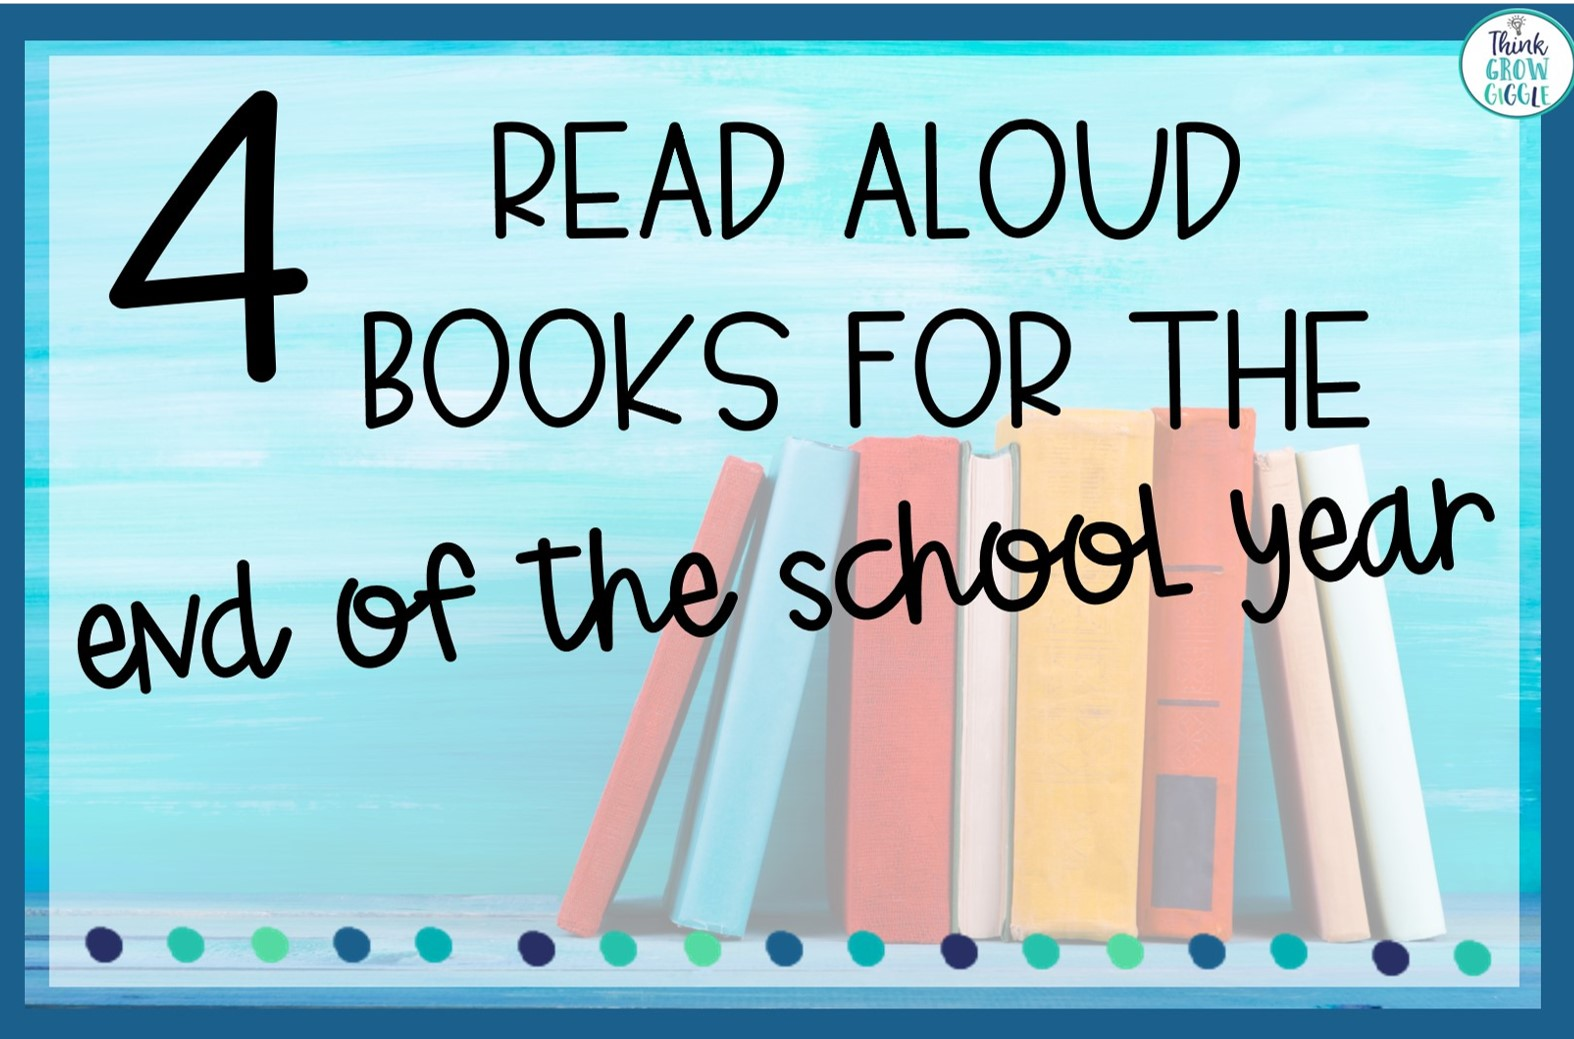 end of school year picture books